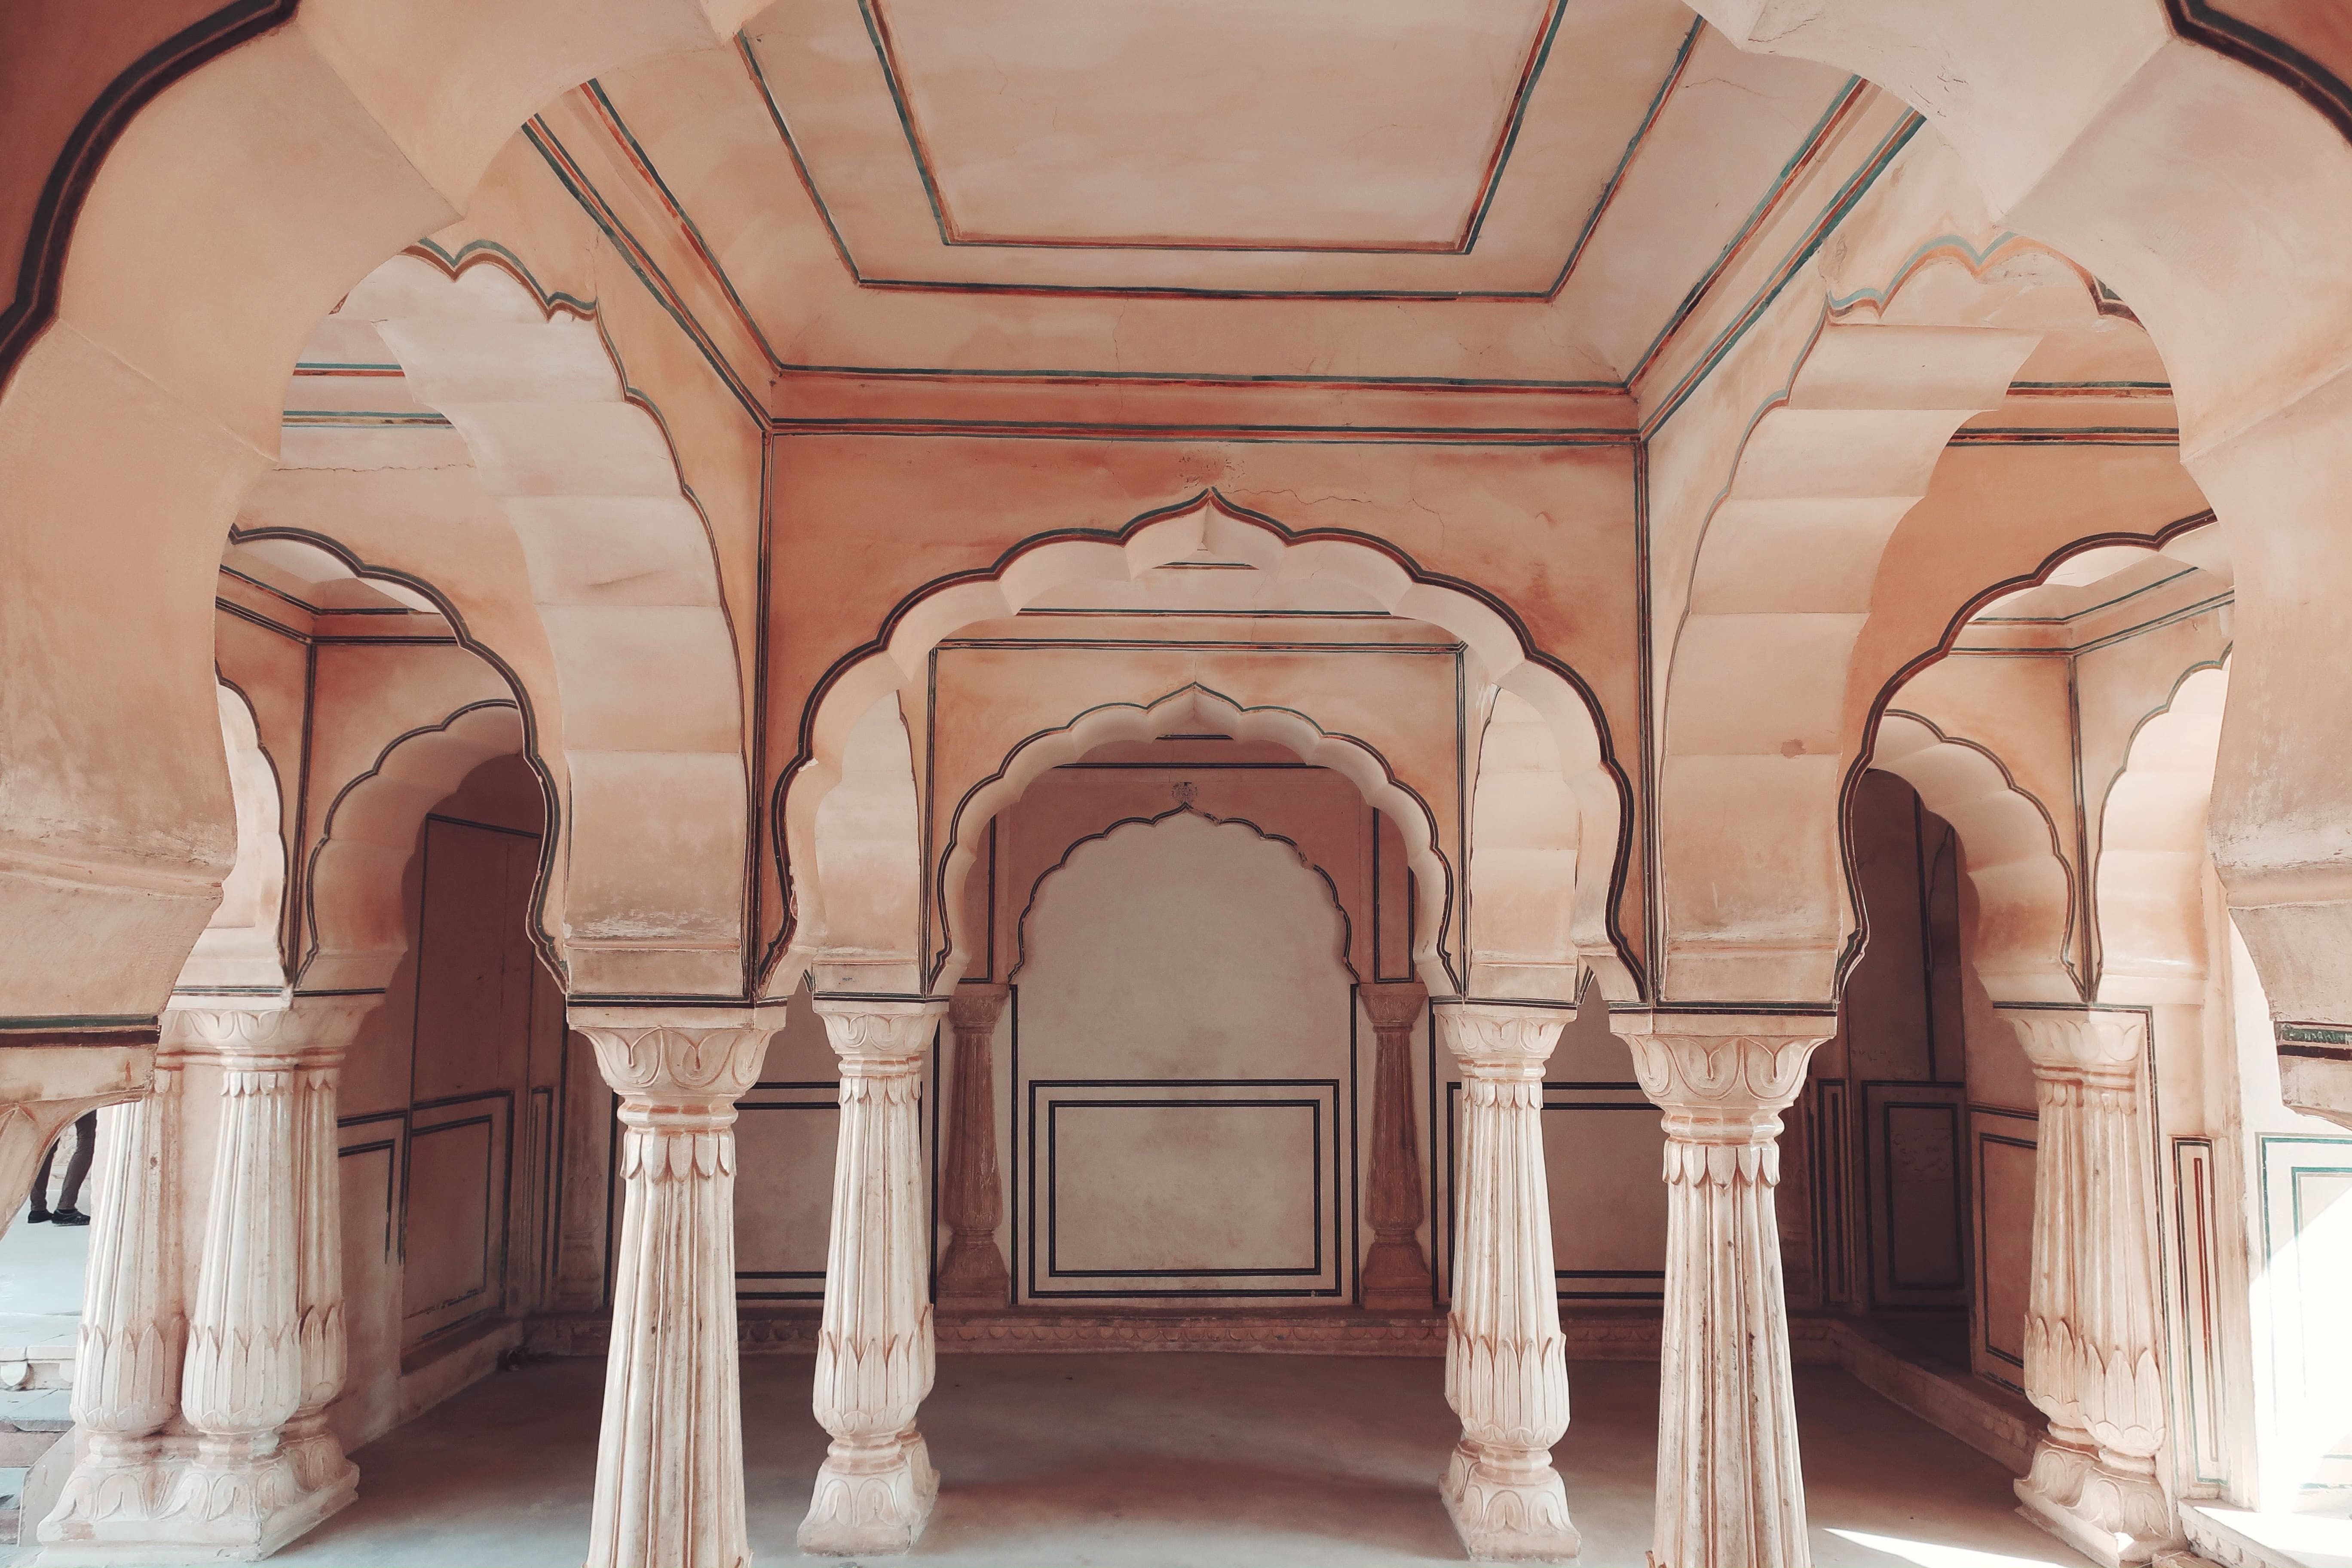 Diwan-e-Aam (Hall of Public Audience) inside the Amer Fort Jaipur